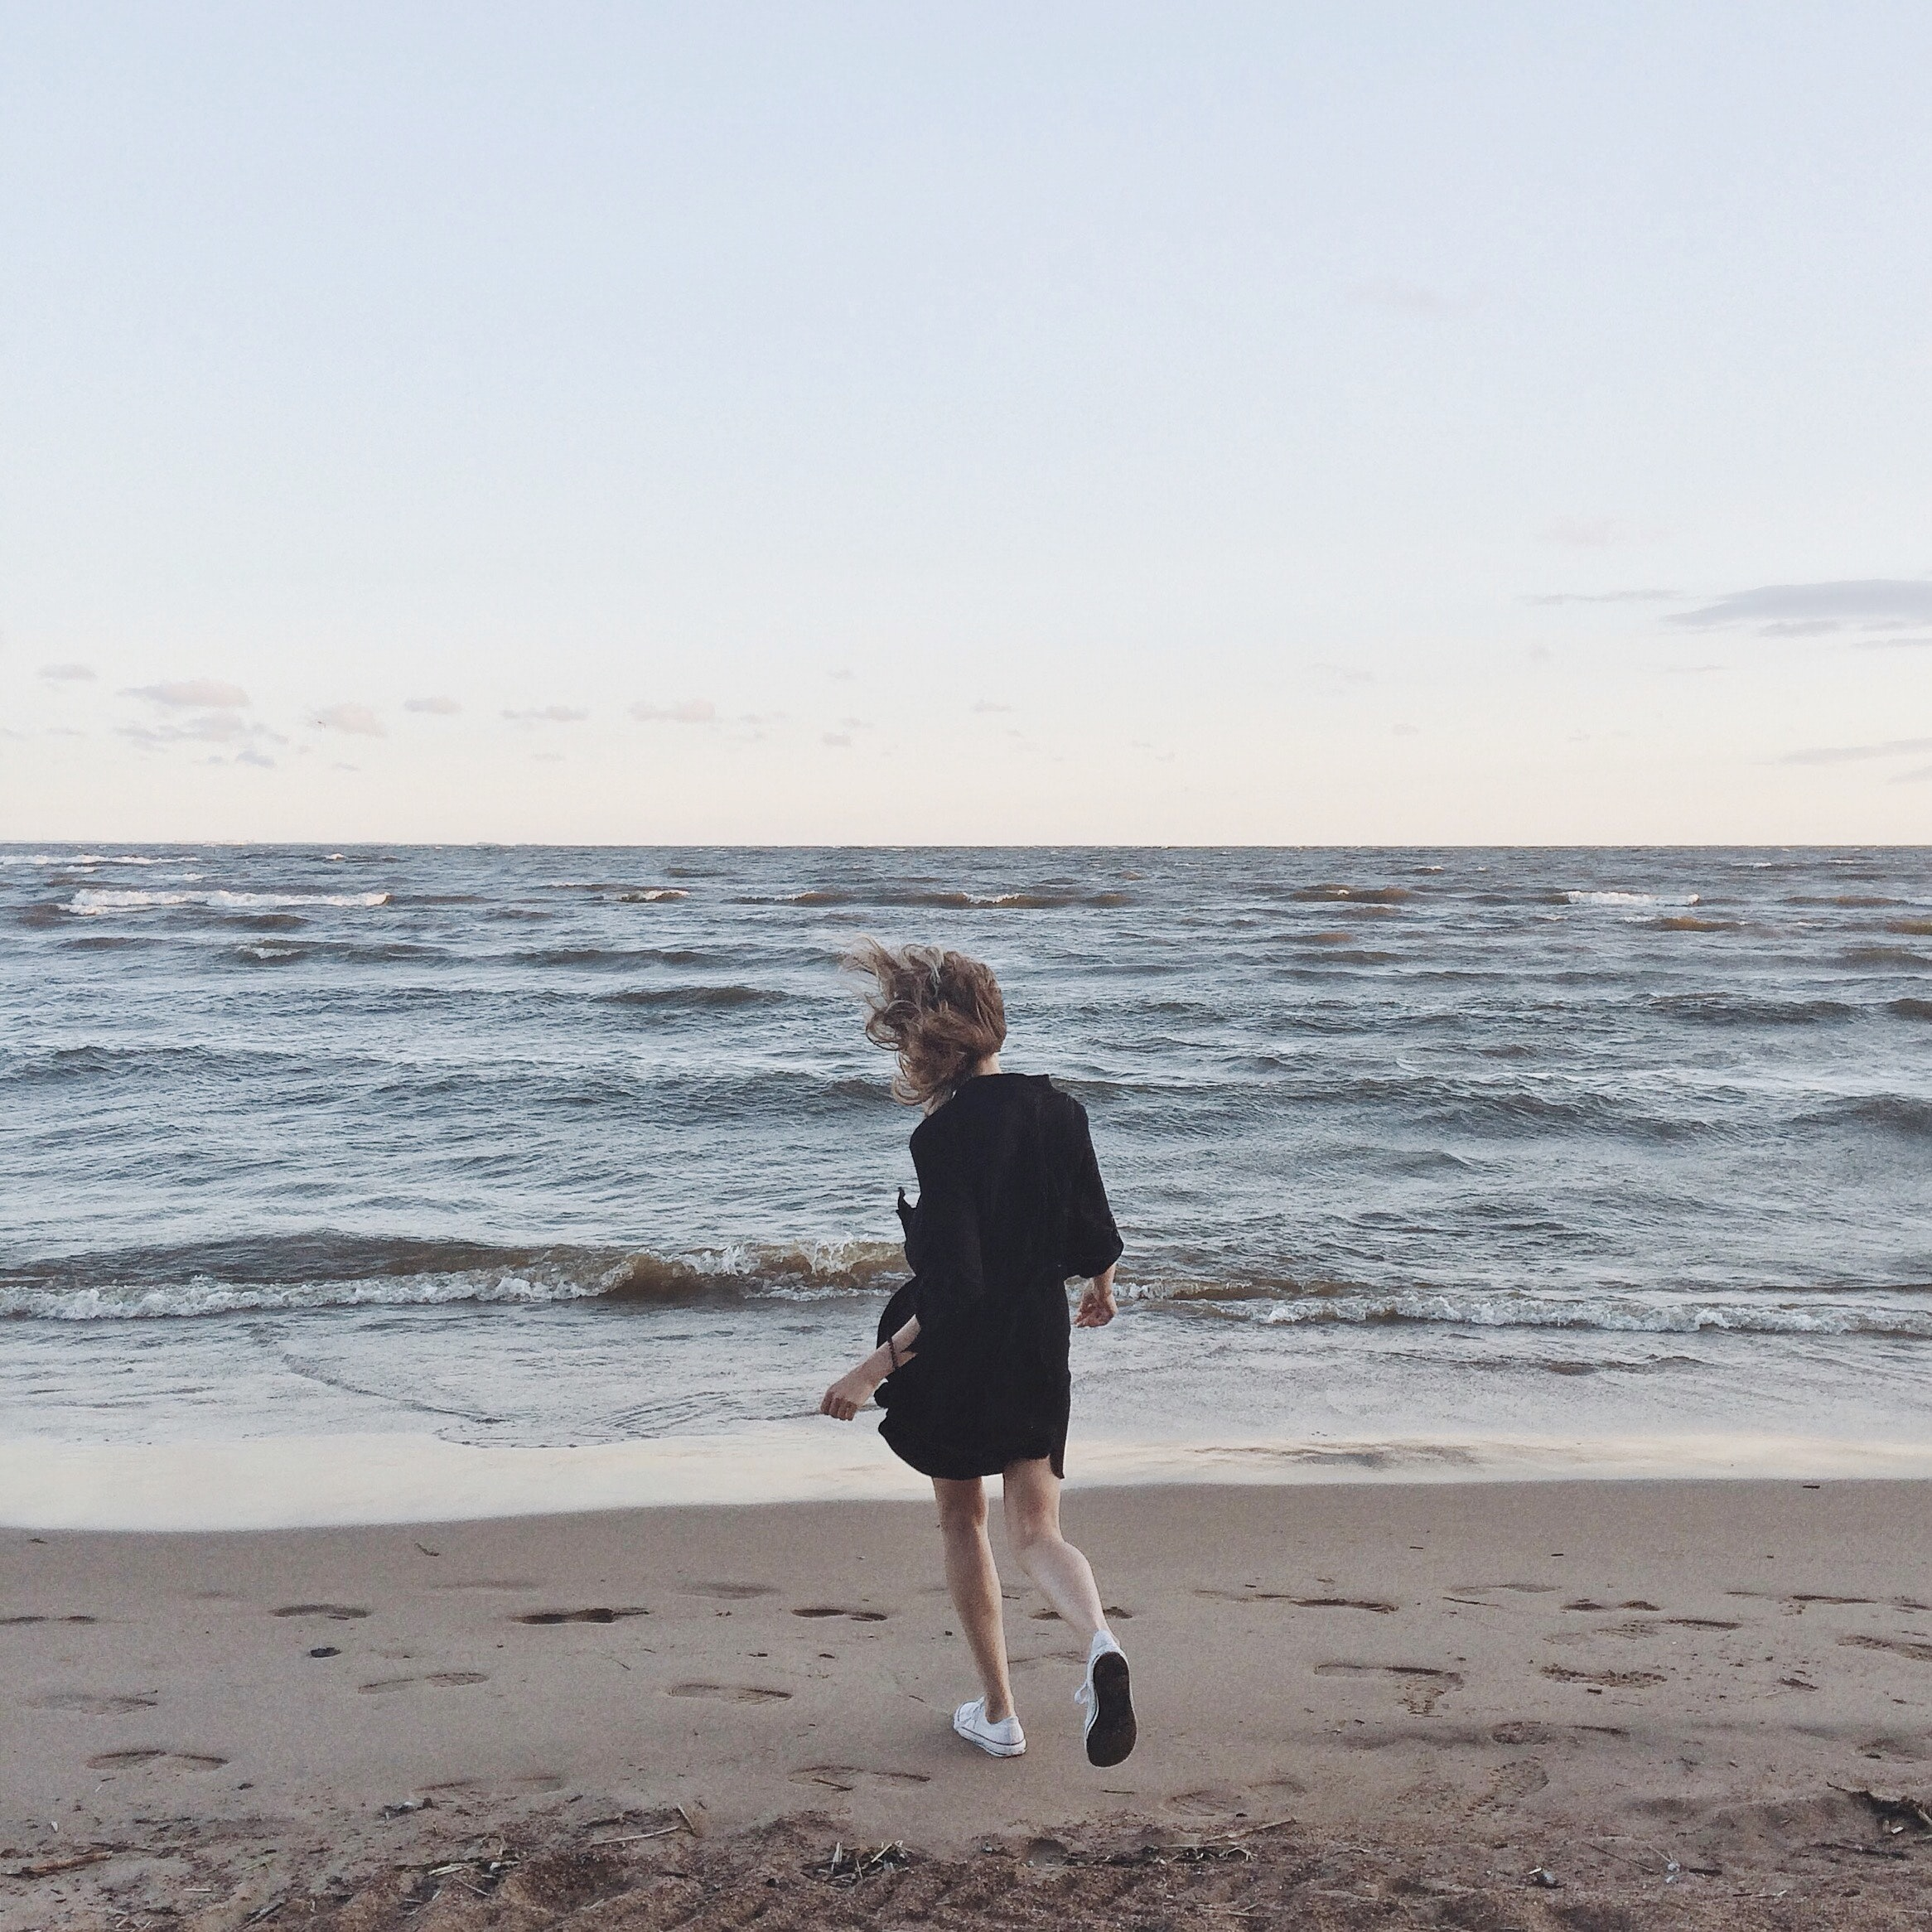 Woman Going Toward the Sea Under Clear Skies, Sea, Young, Woman, Waves, HQ Photo